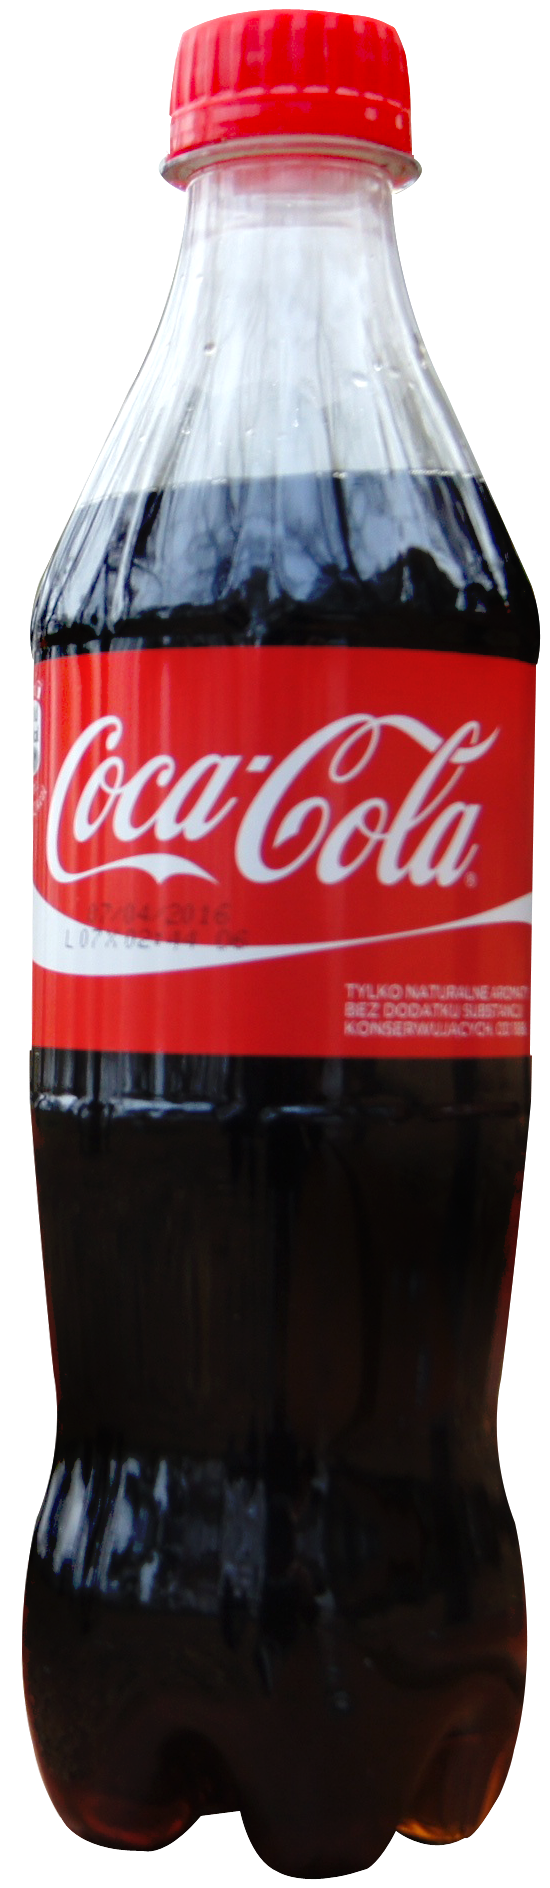 cocacola png transparent cocacolapng images pluspng